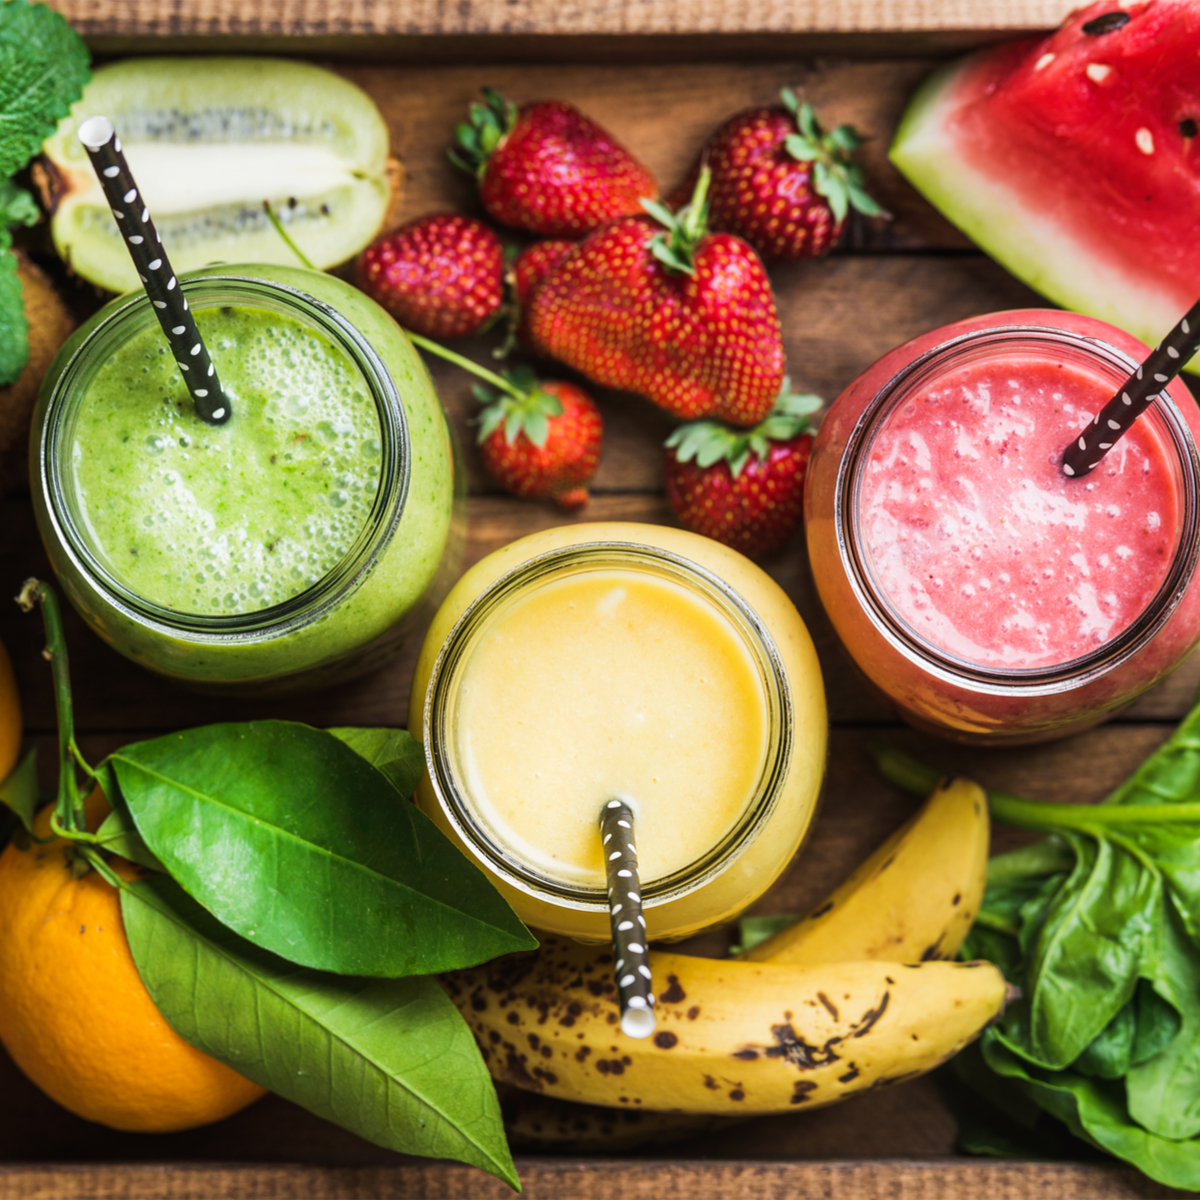 The One Metabolism-Boosting Smoothie That Burns Calories And Fat Fast, According To Nutritionists